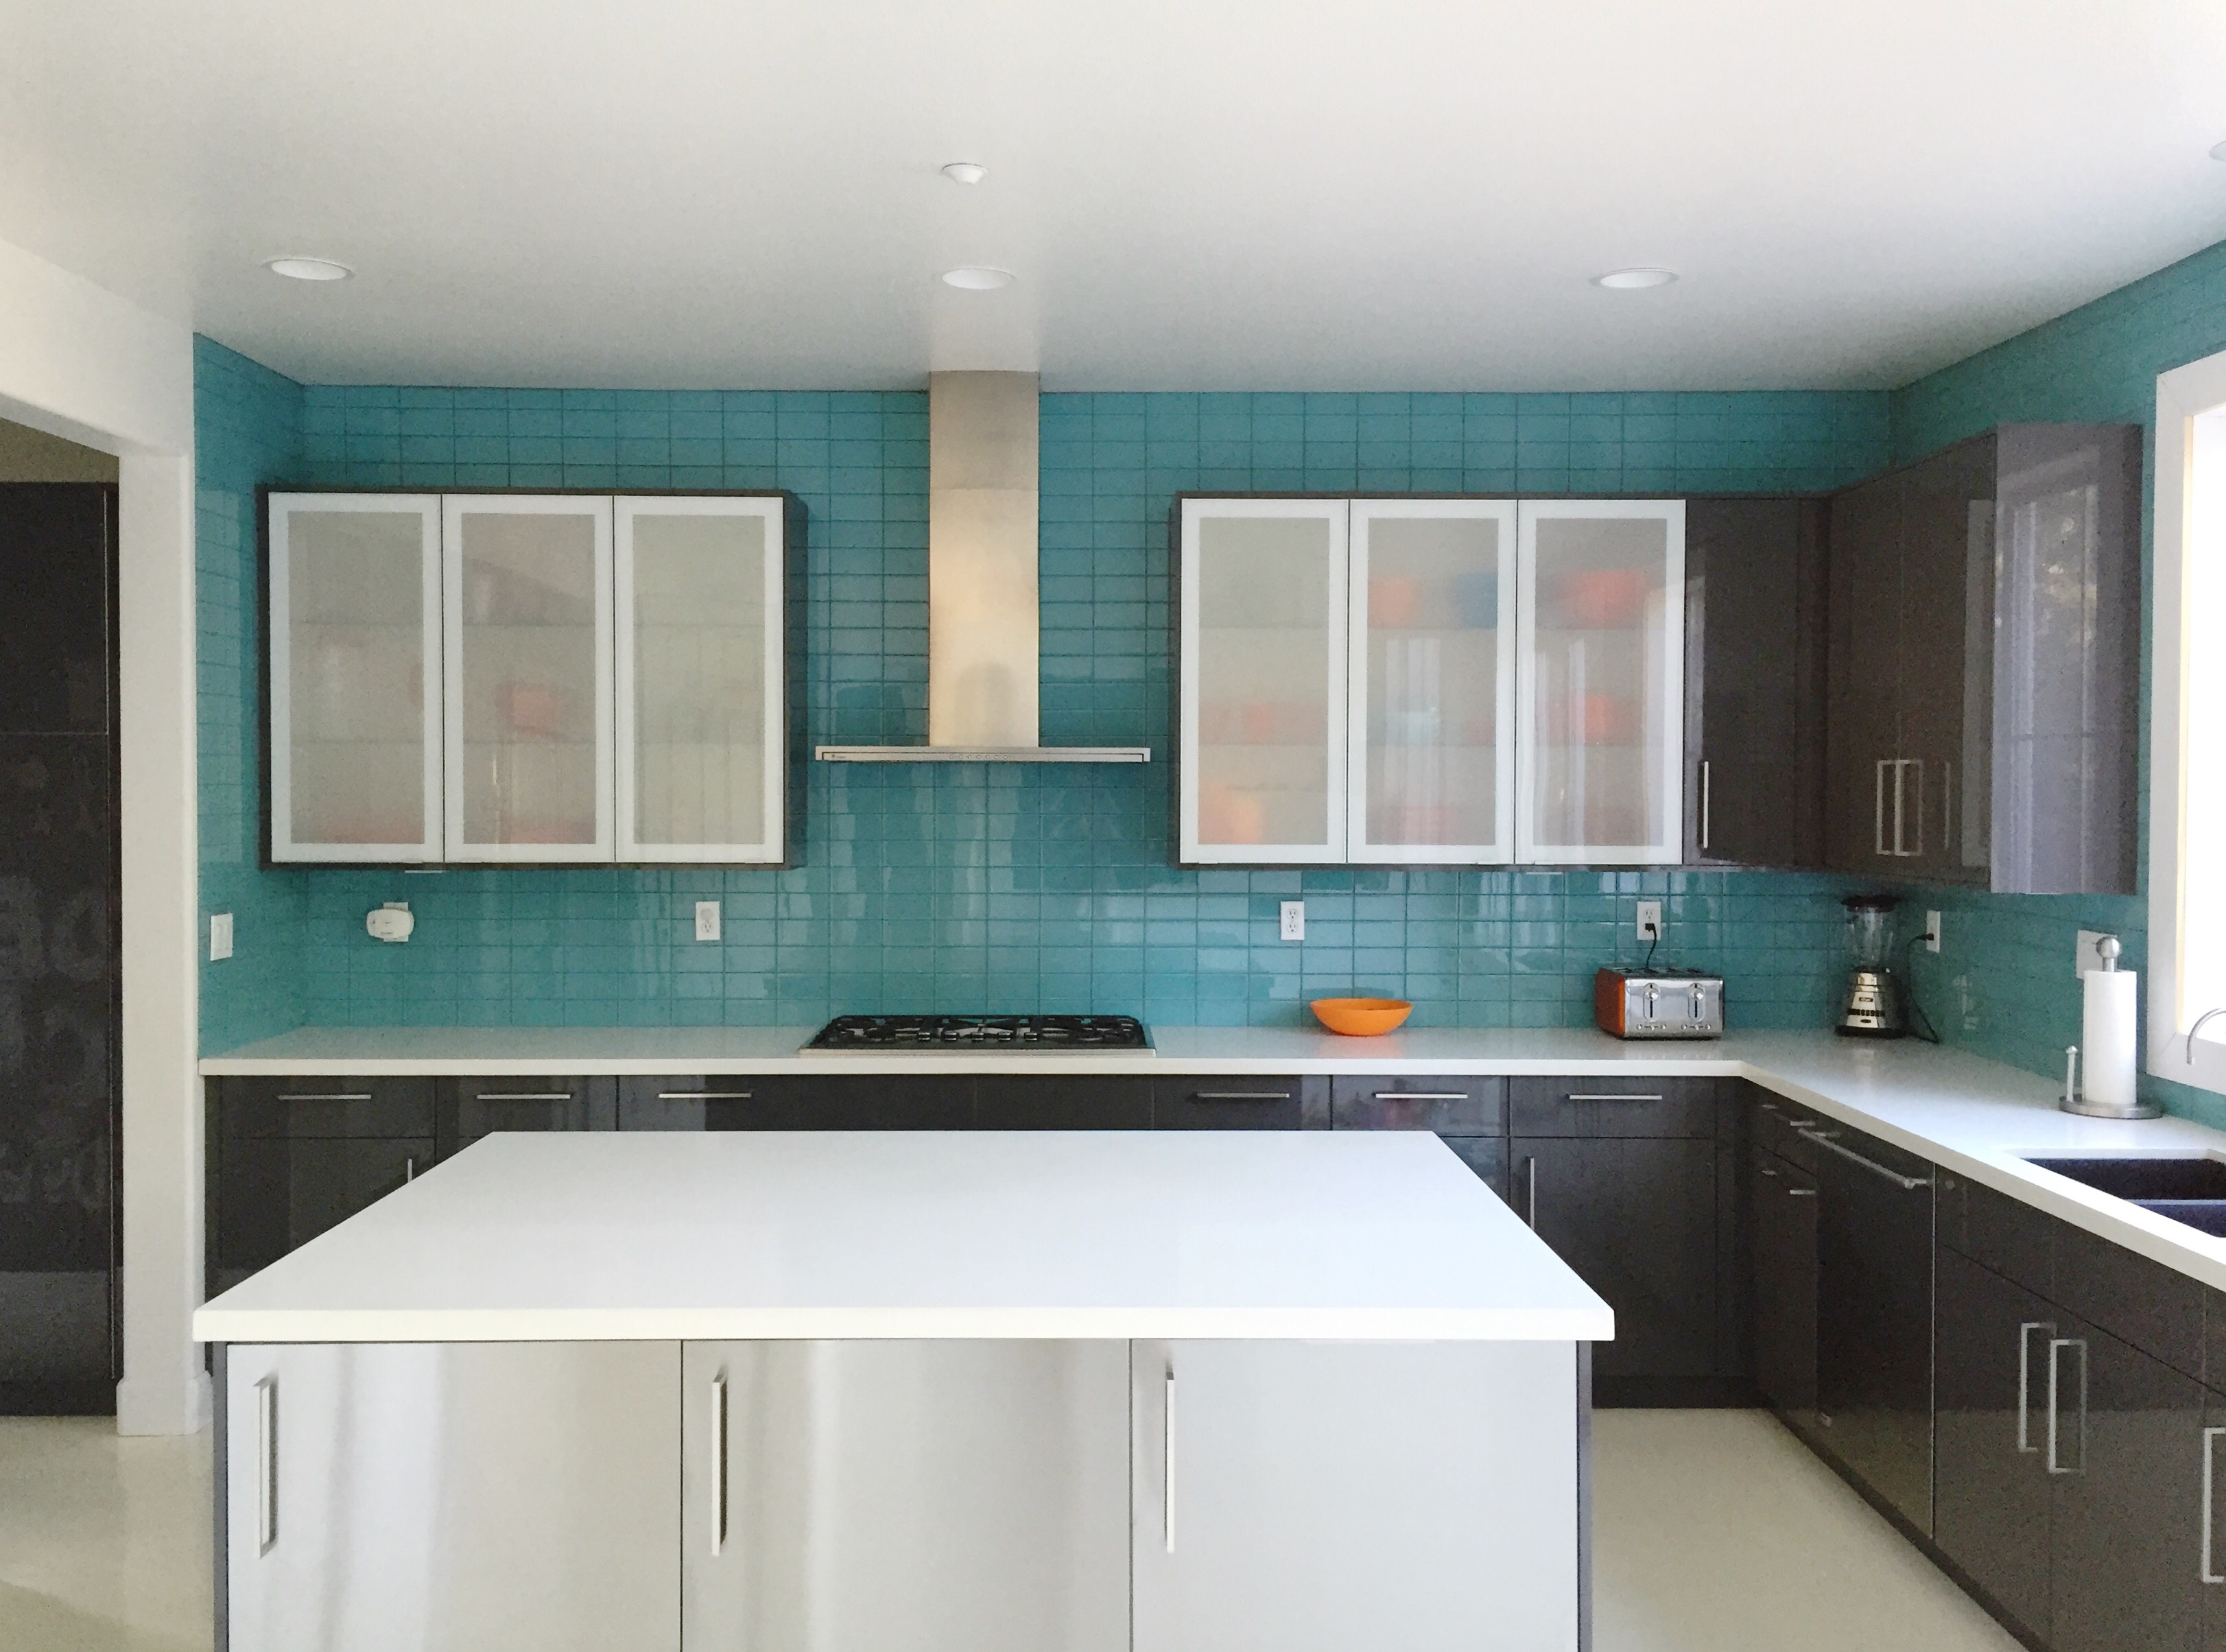 How to install glass tile backsplash easy diy for a better kitchen dailygadgetfo Image collections